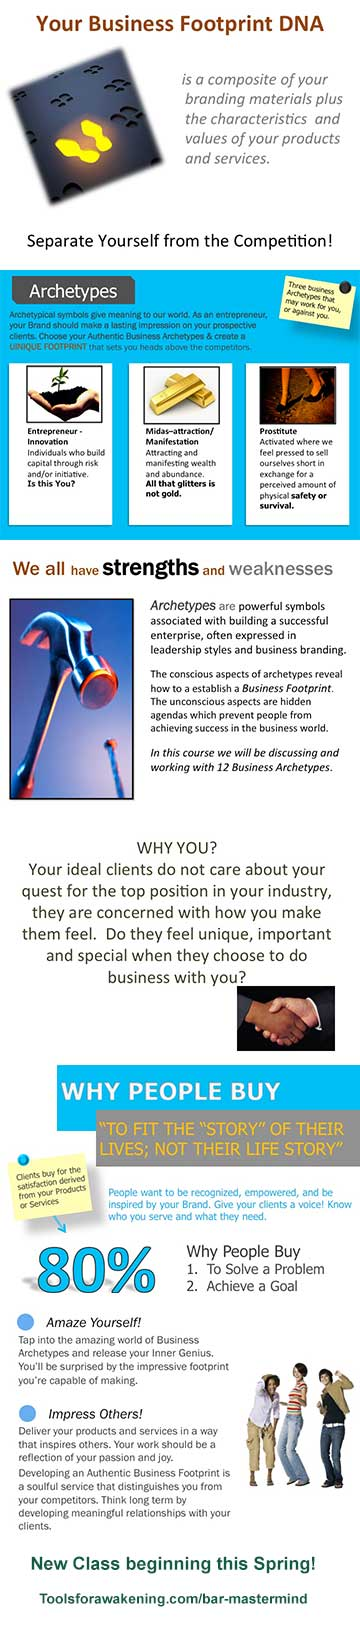 Creating your Authentic Business Brand